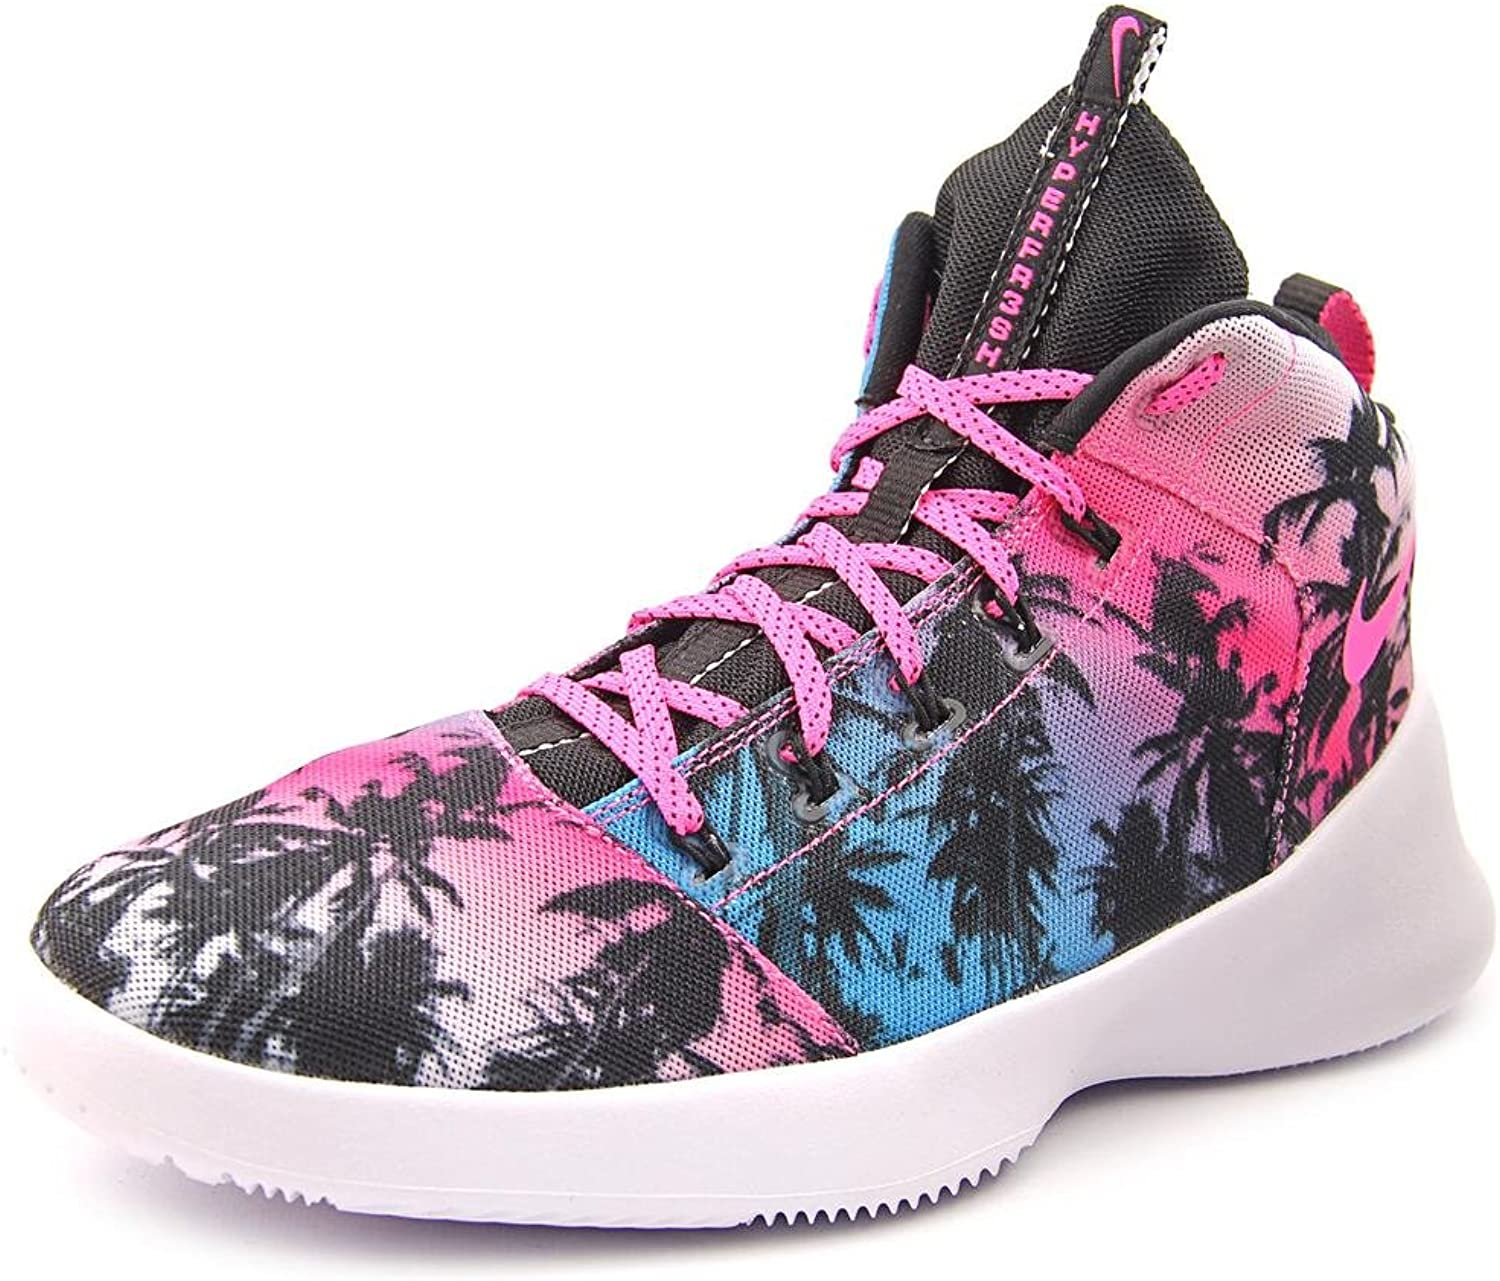 Nike Men's Hyperfr3sh Qs Basketball shoes